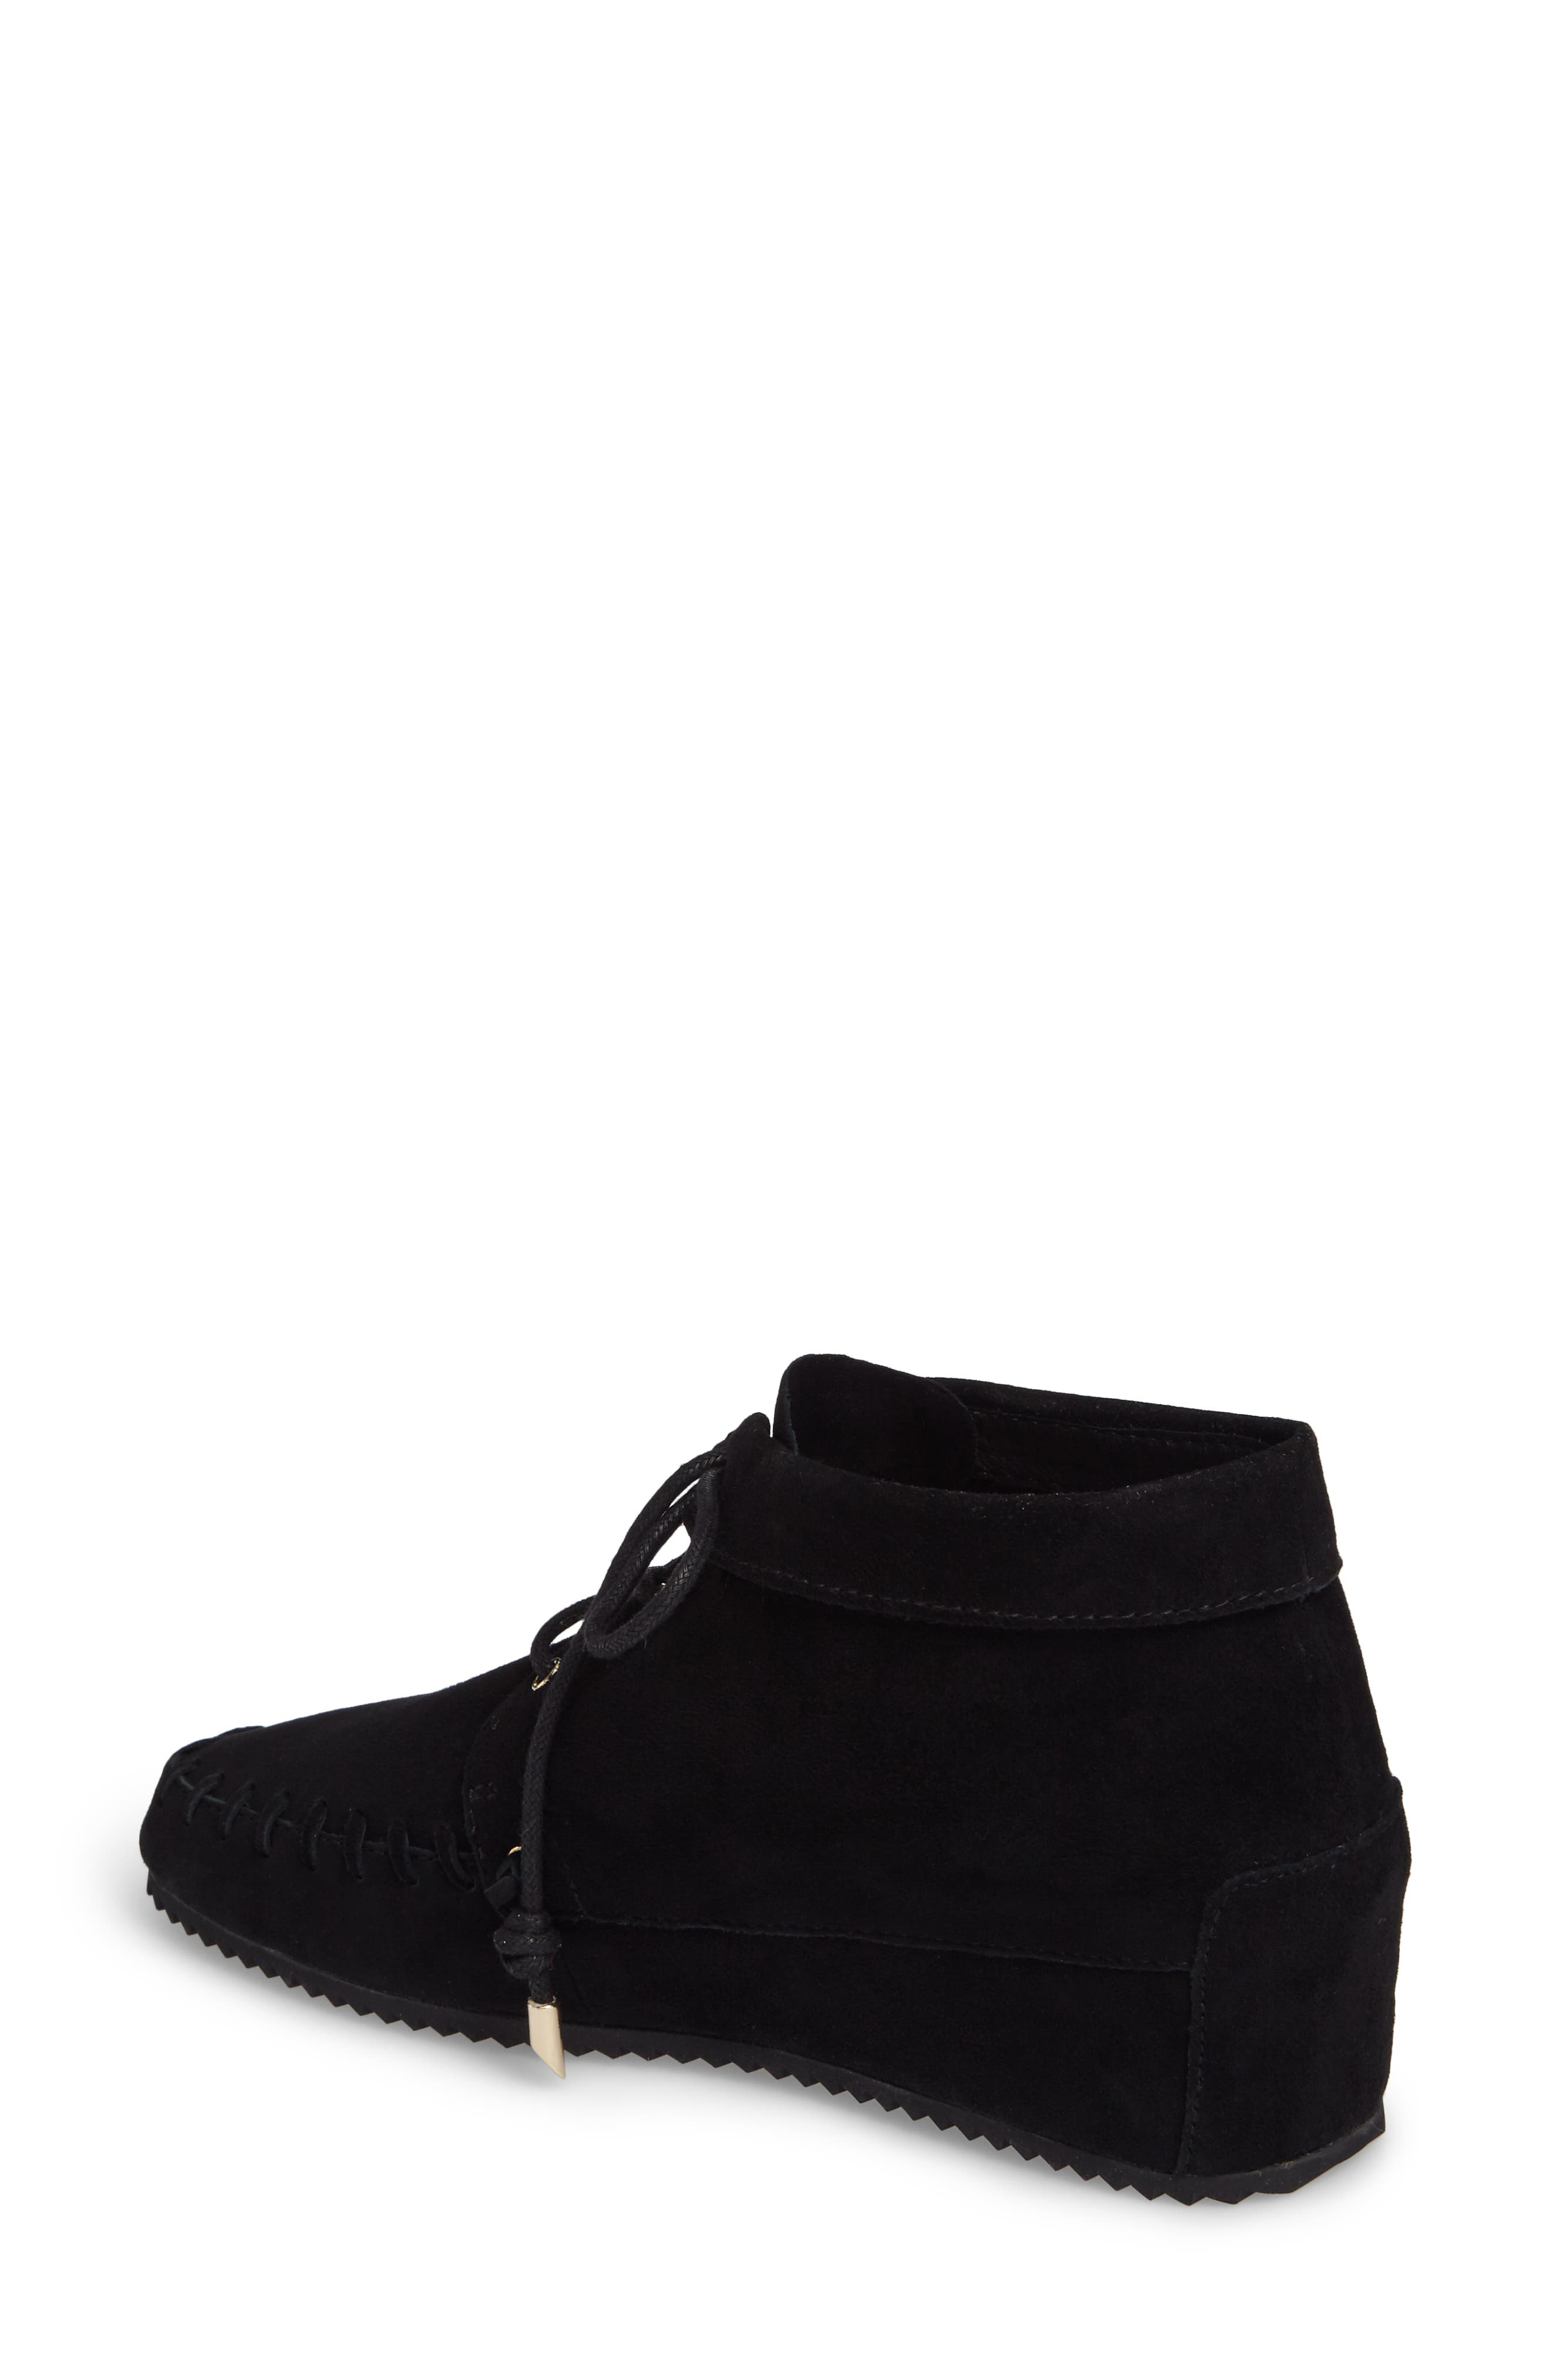 Jenna Wedge Bootie,                             Alternate thumbnail 2, color,                             001